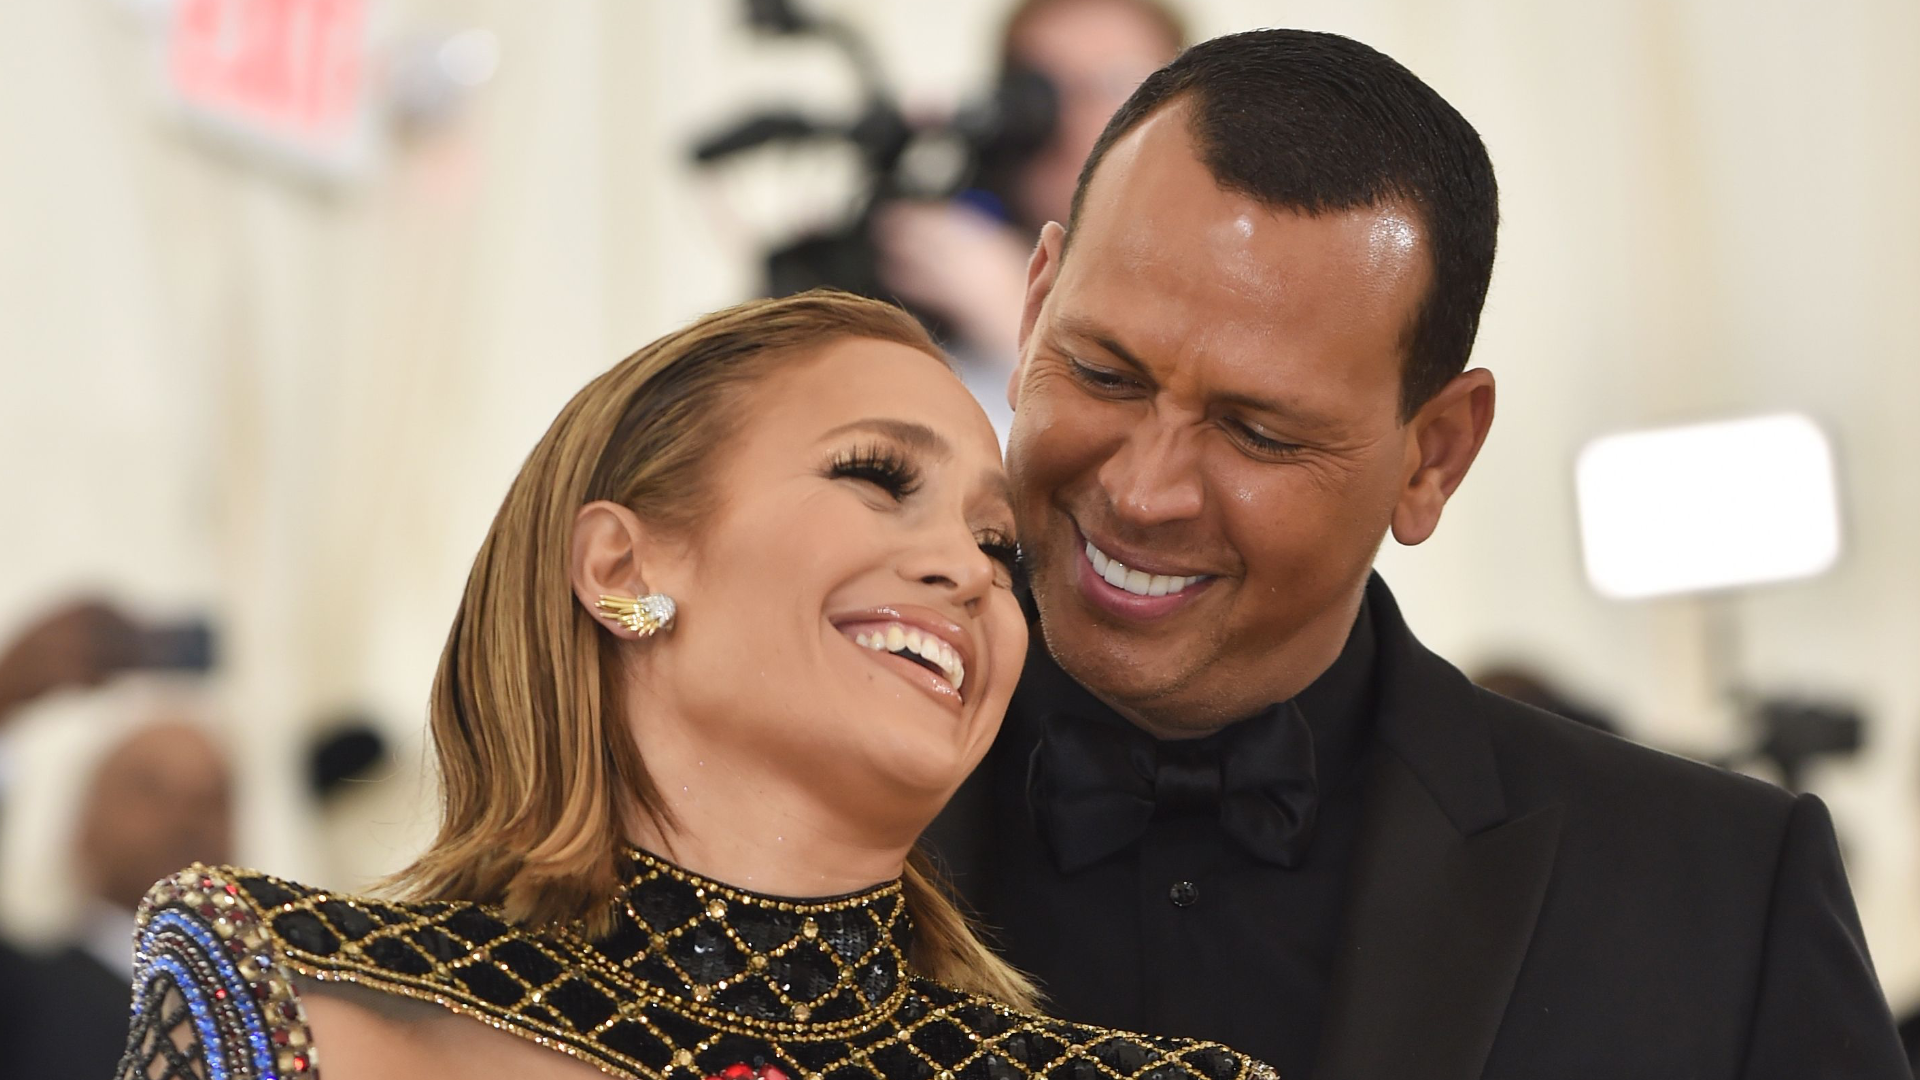 Jennifer Lopez Is Being Sued for $150,000 Over an Instagram Pic of Her and Alex Rodriguez